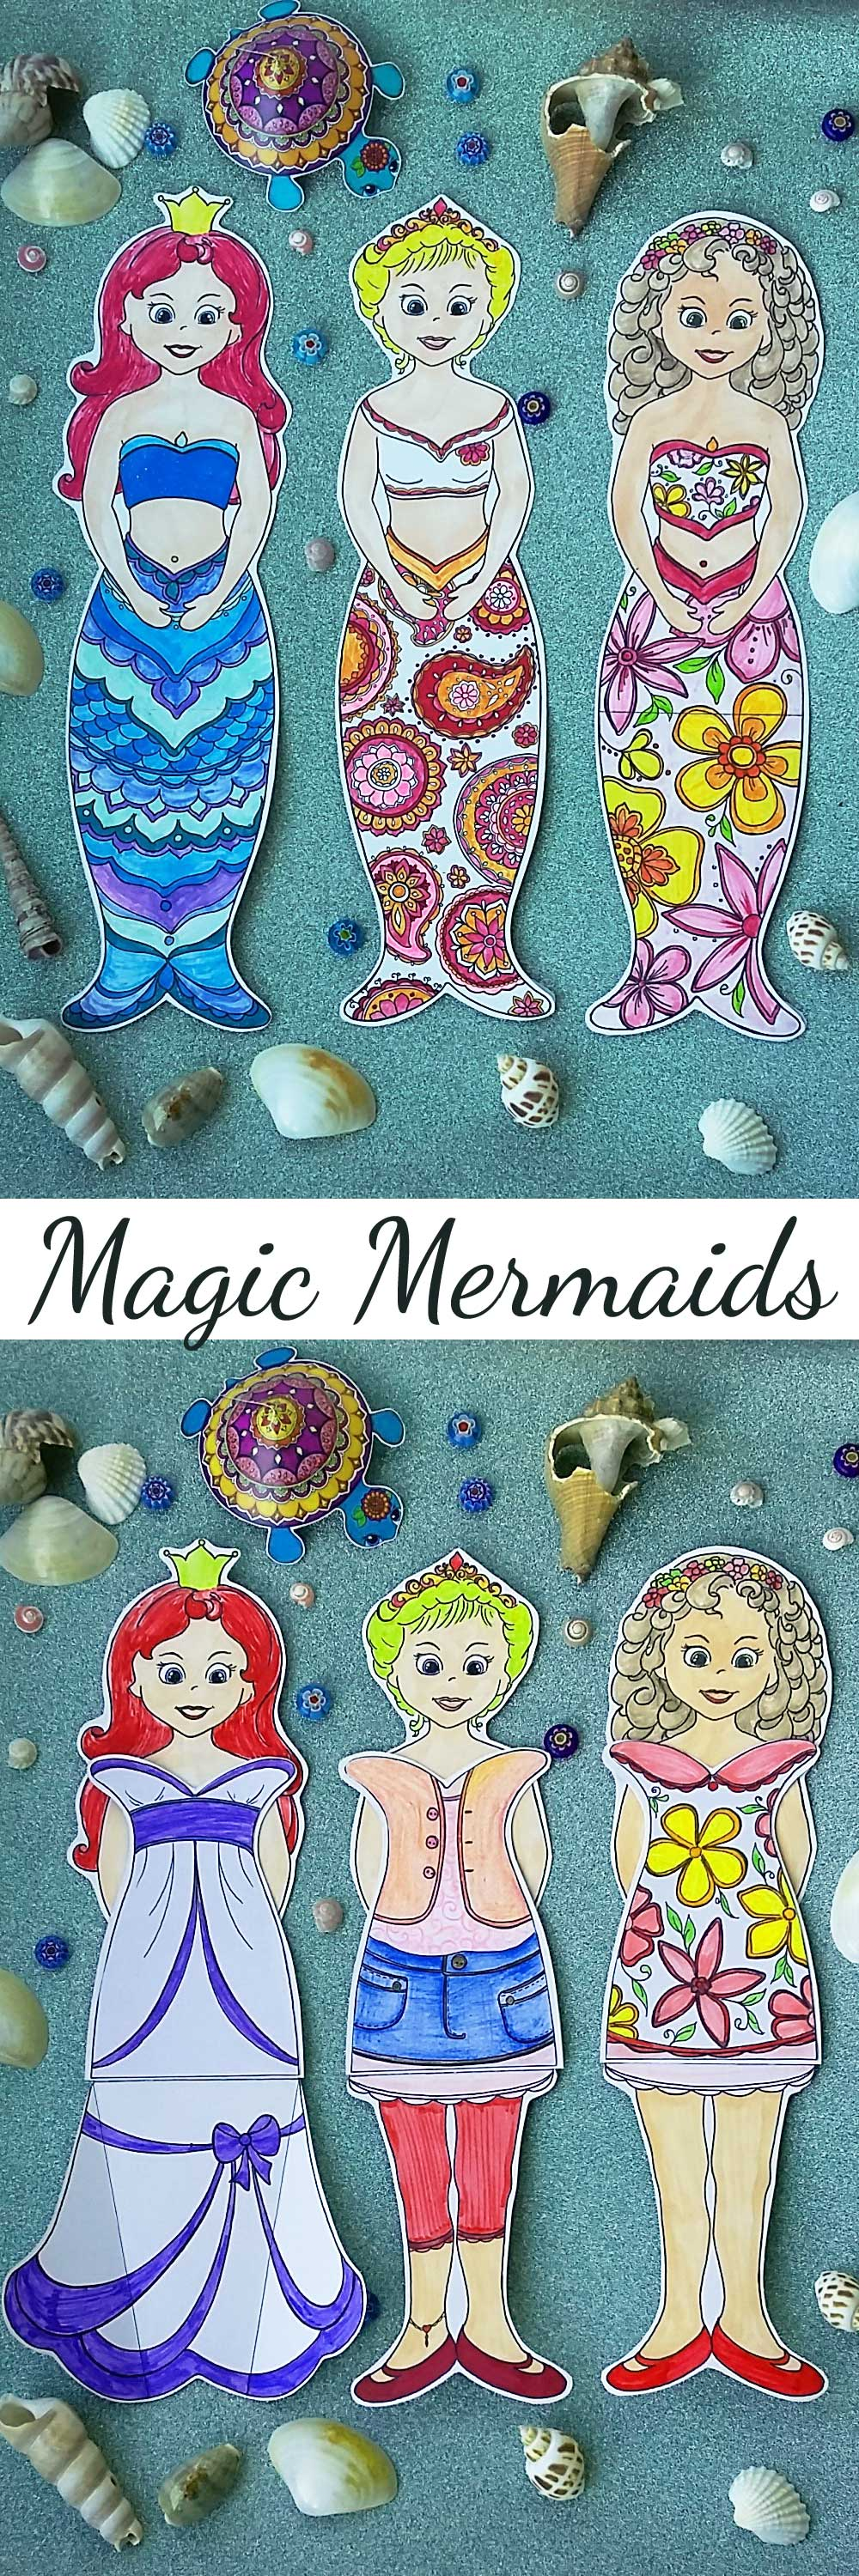 Hattifant's Magic Mermaid World Coloring page and Papercraft